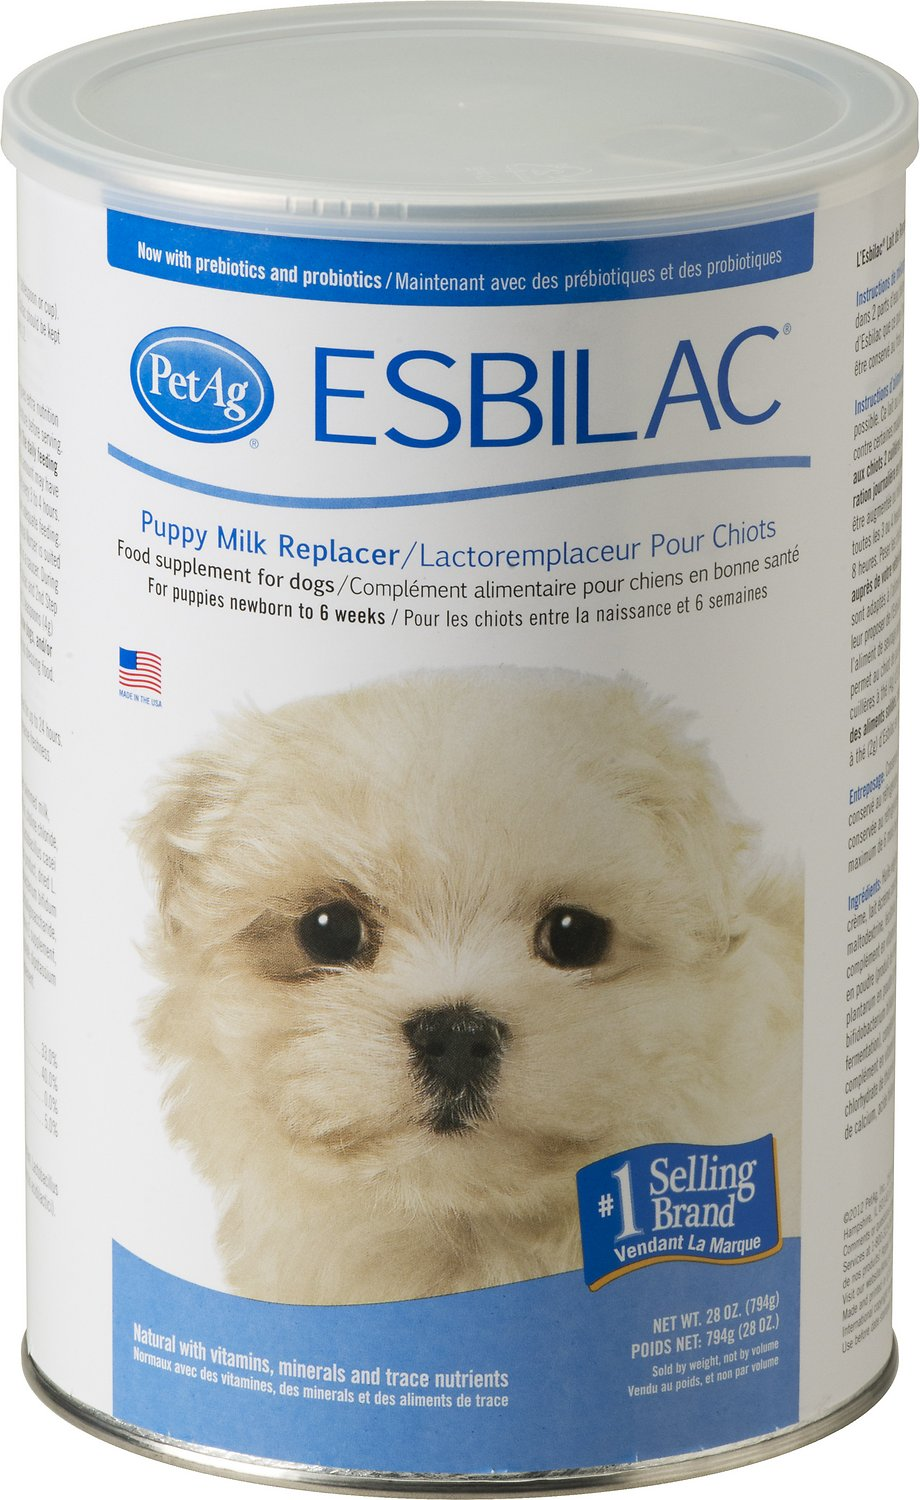 PetAg Esbilac Puppy Milk Replacer Powder Image